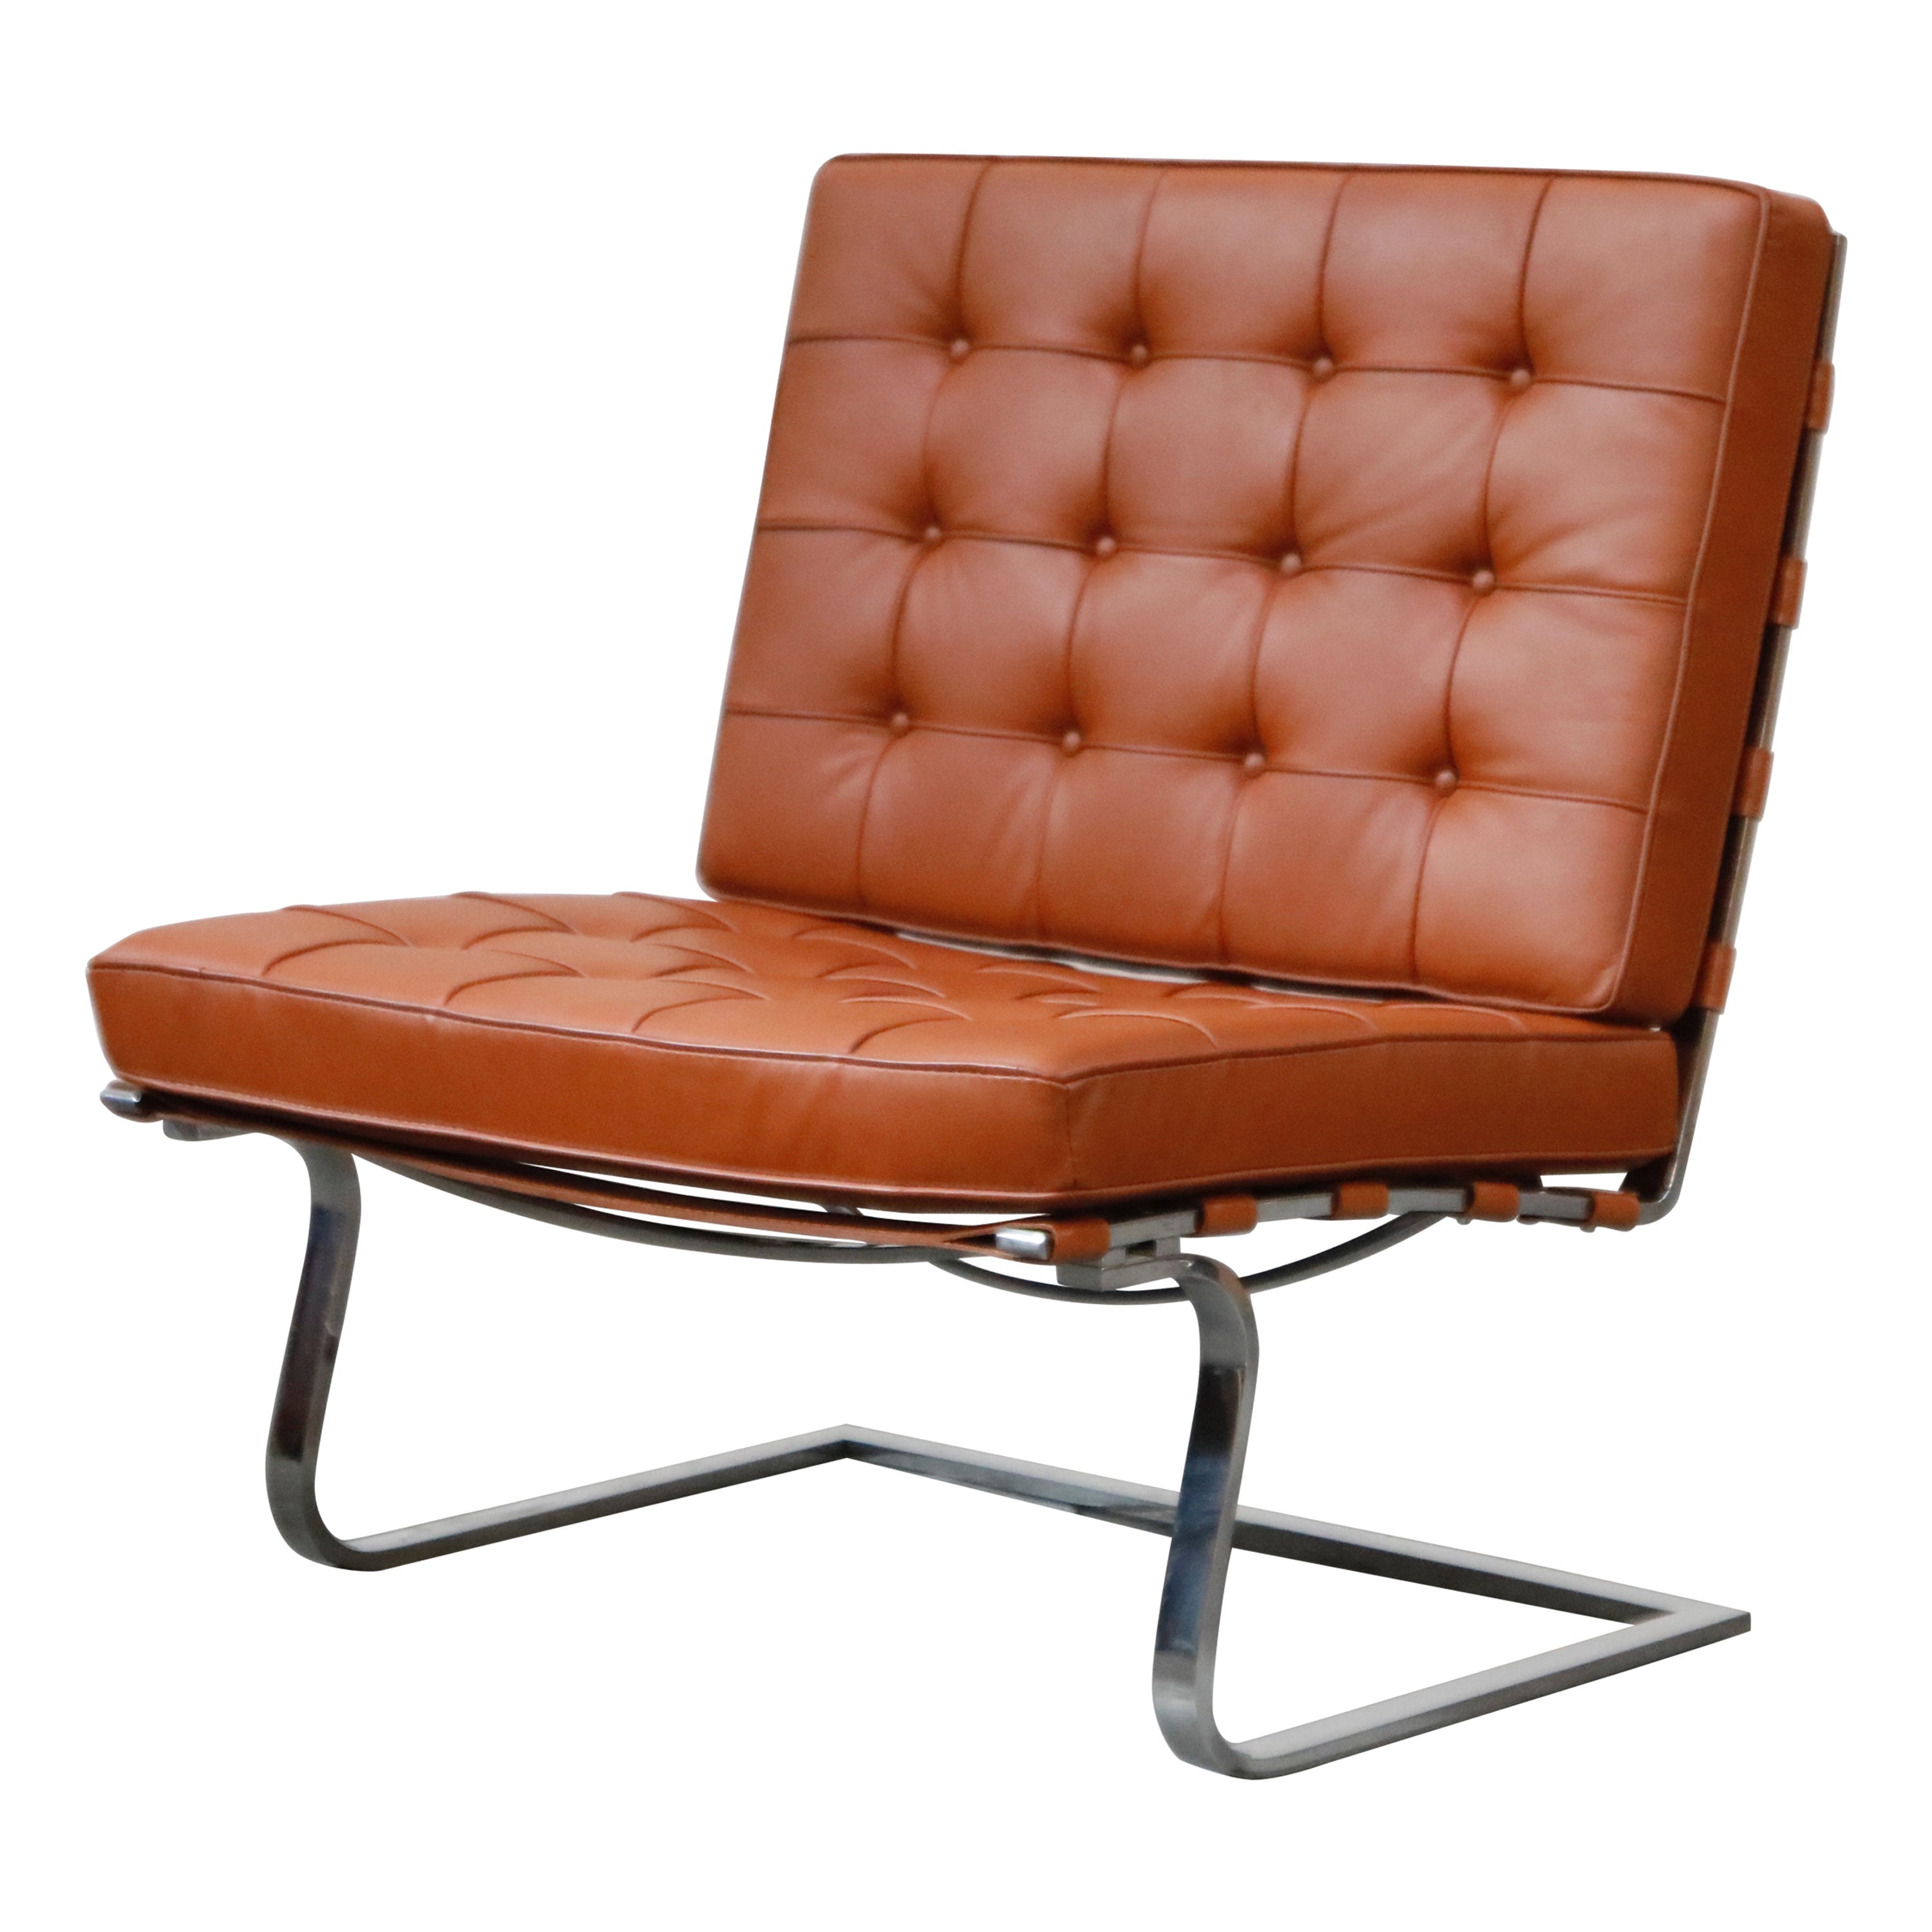 Tugendhat Lounge Chair by Mies van der Rohe for Knoll Associates, 1960s, Signed